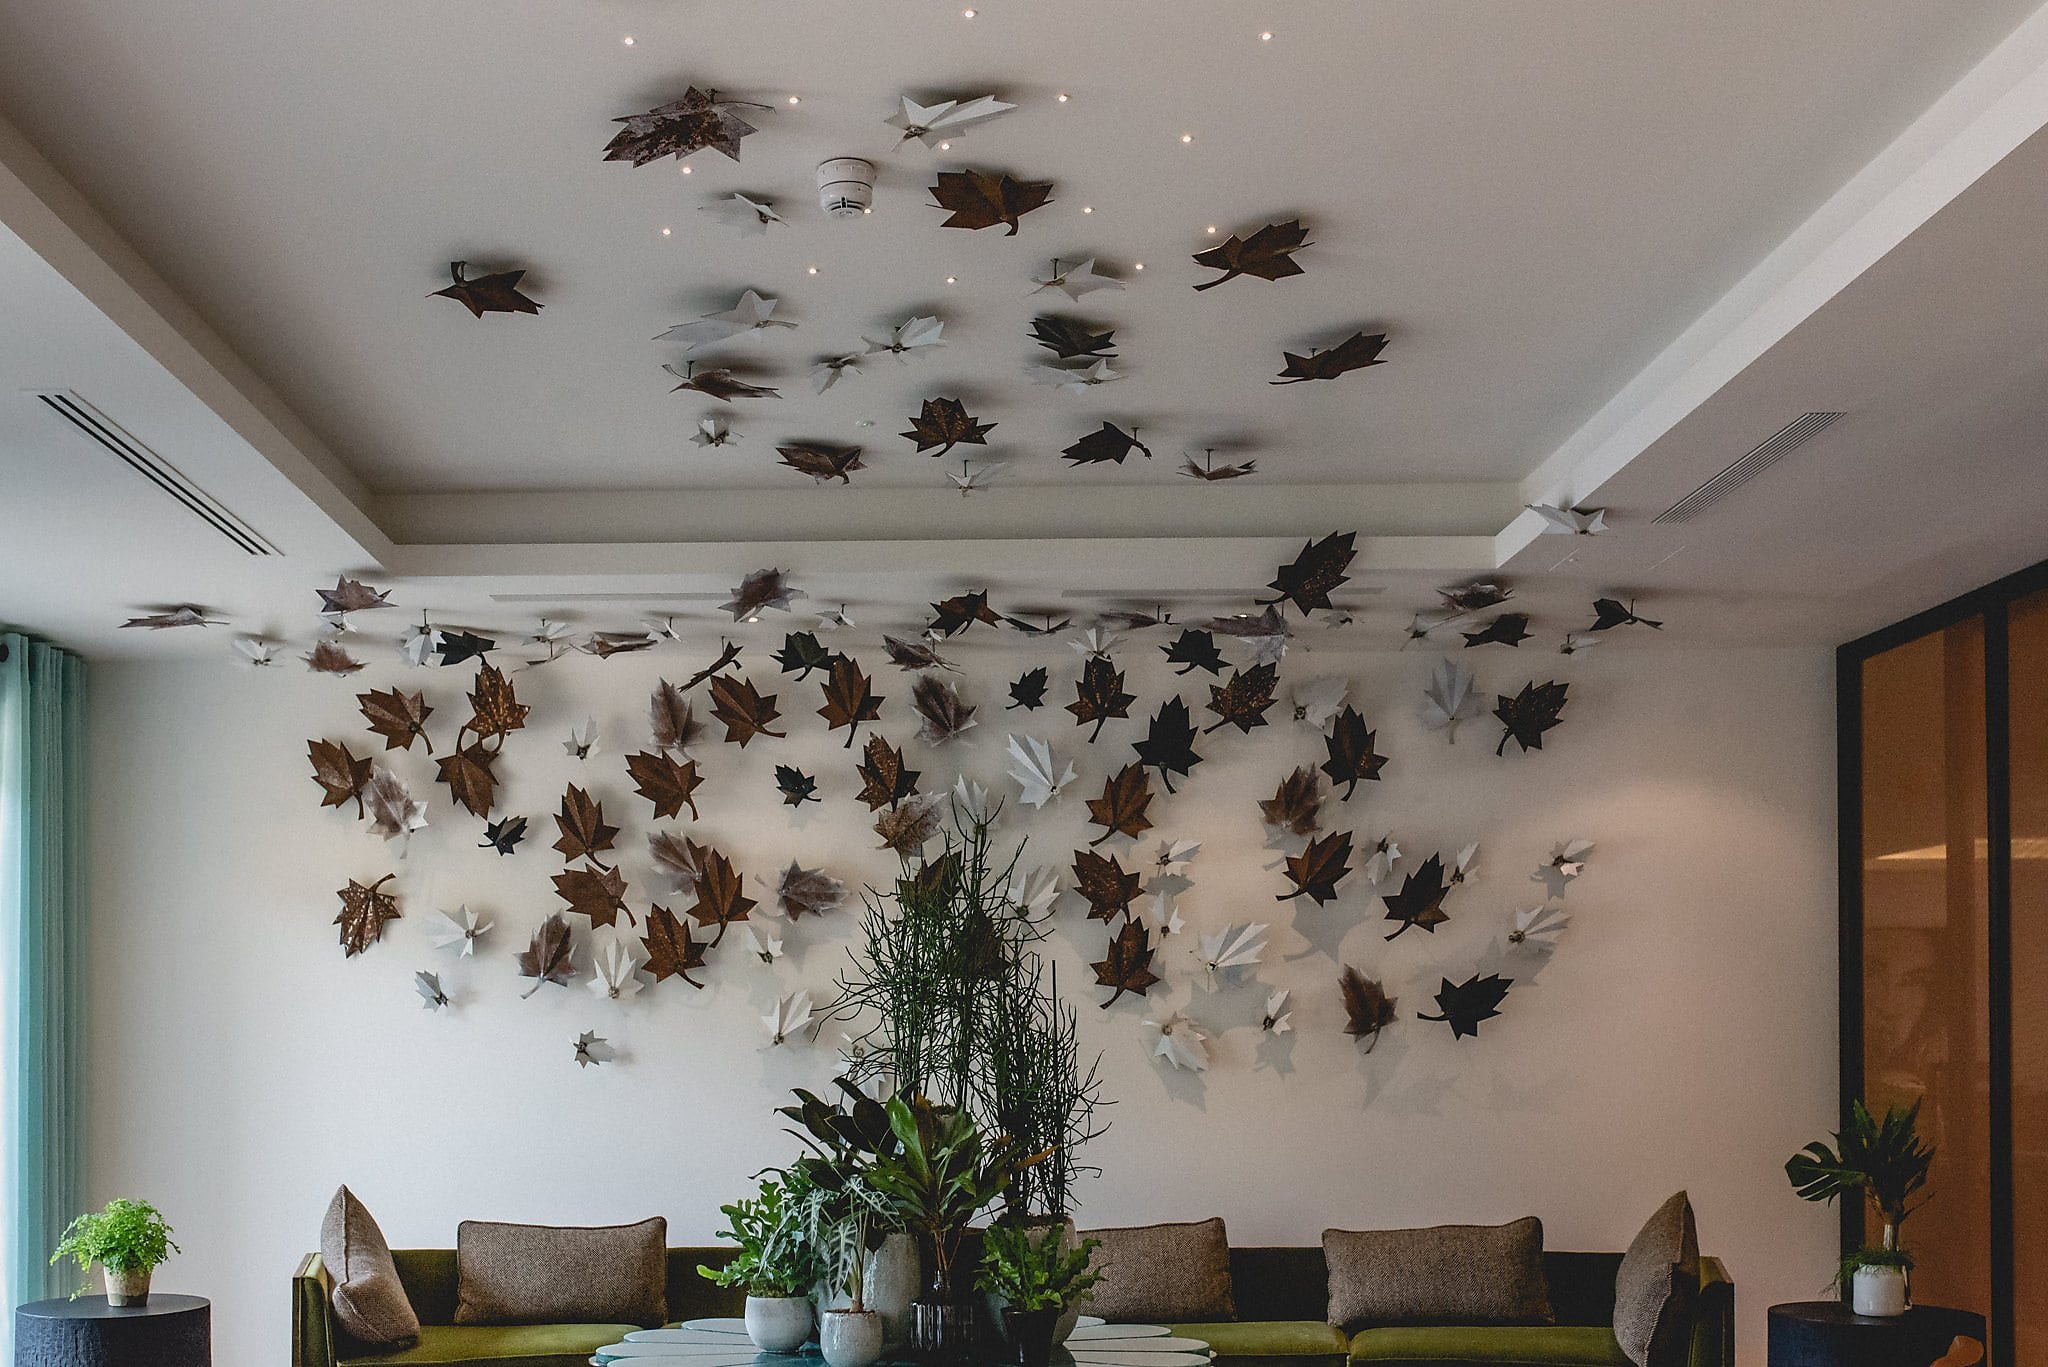 Metal leaf sculpture on the walls and ceiling at The Grove